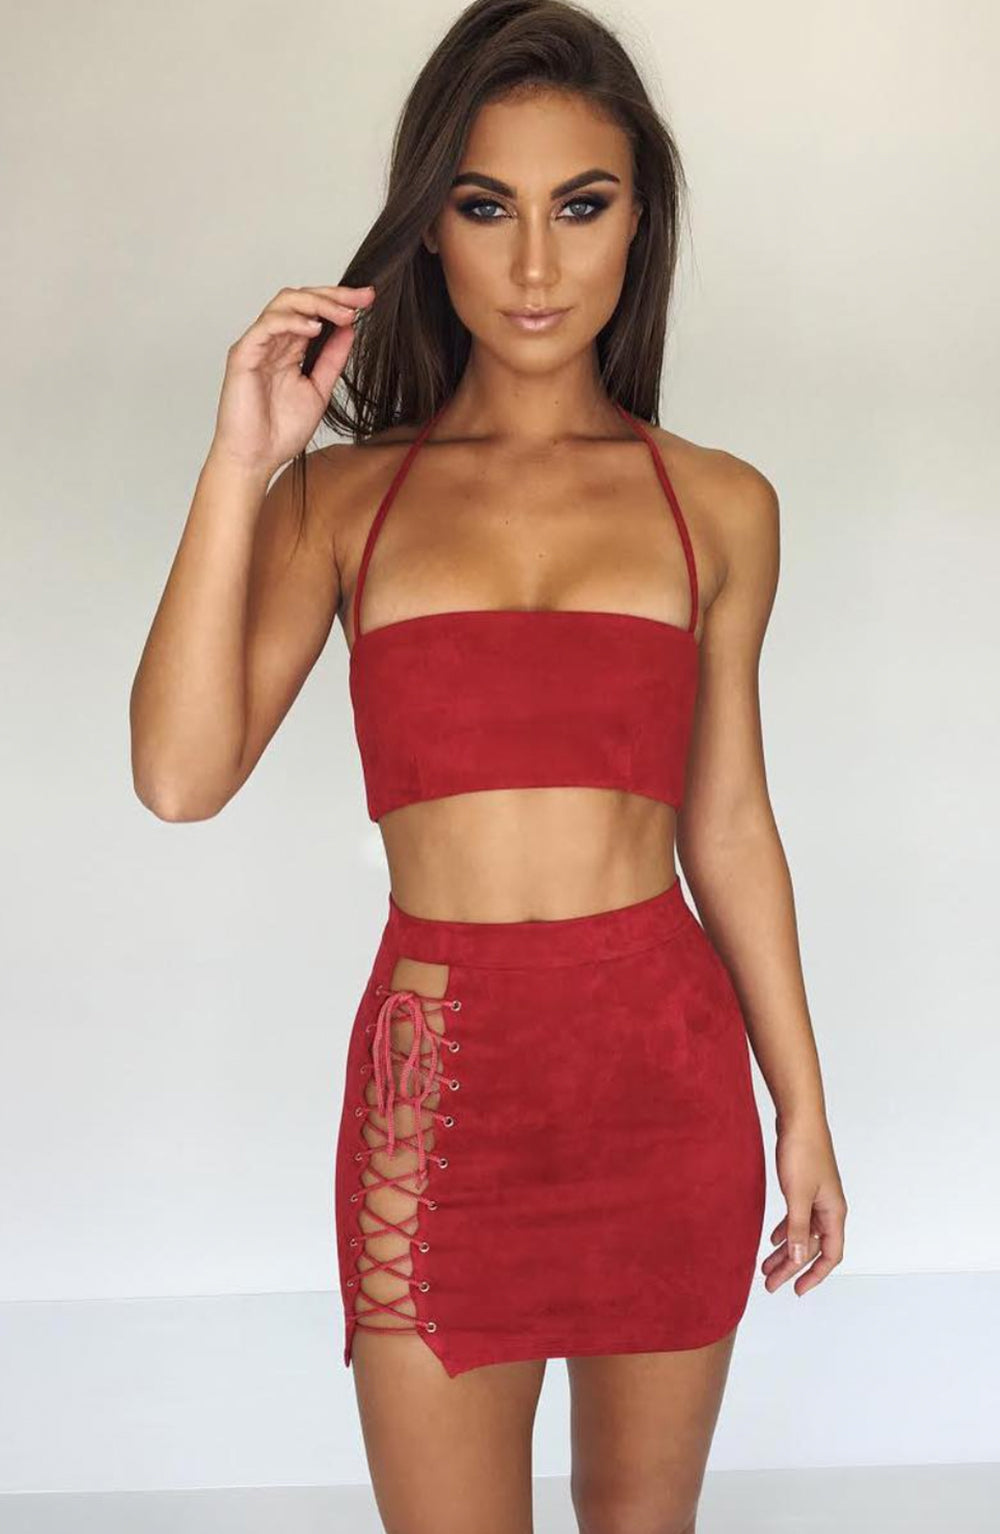 Risky Set - Red